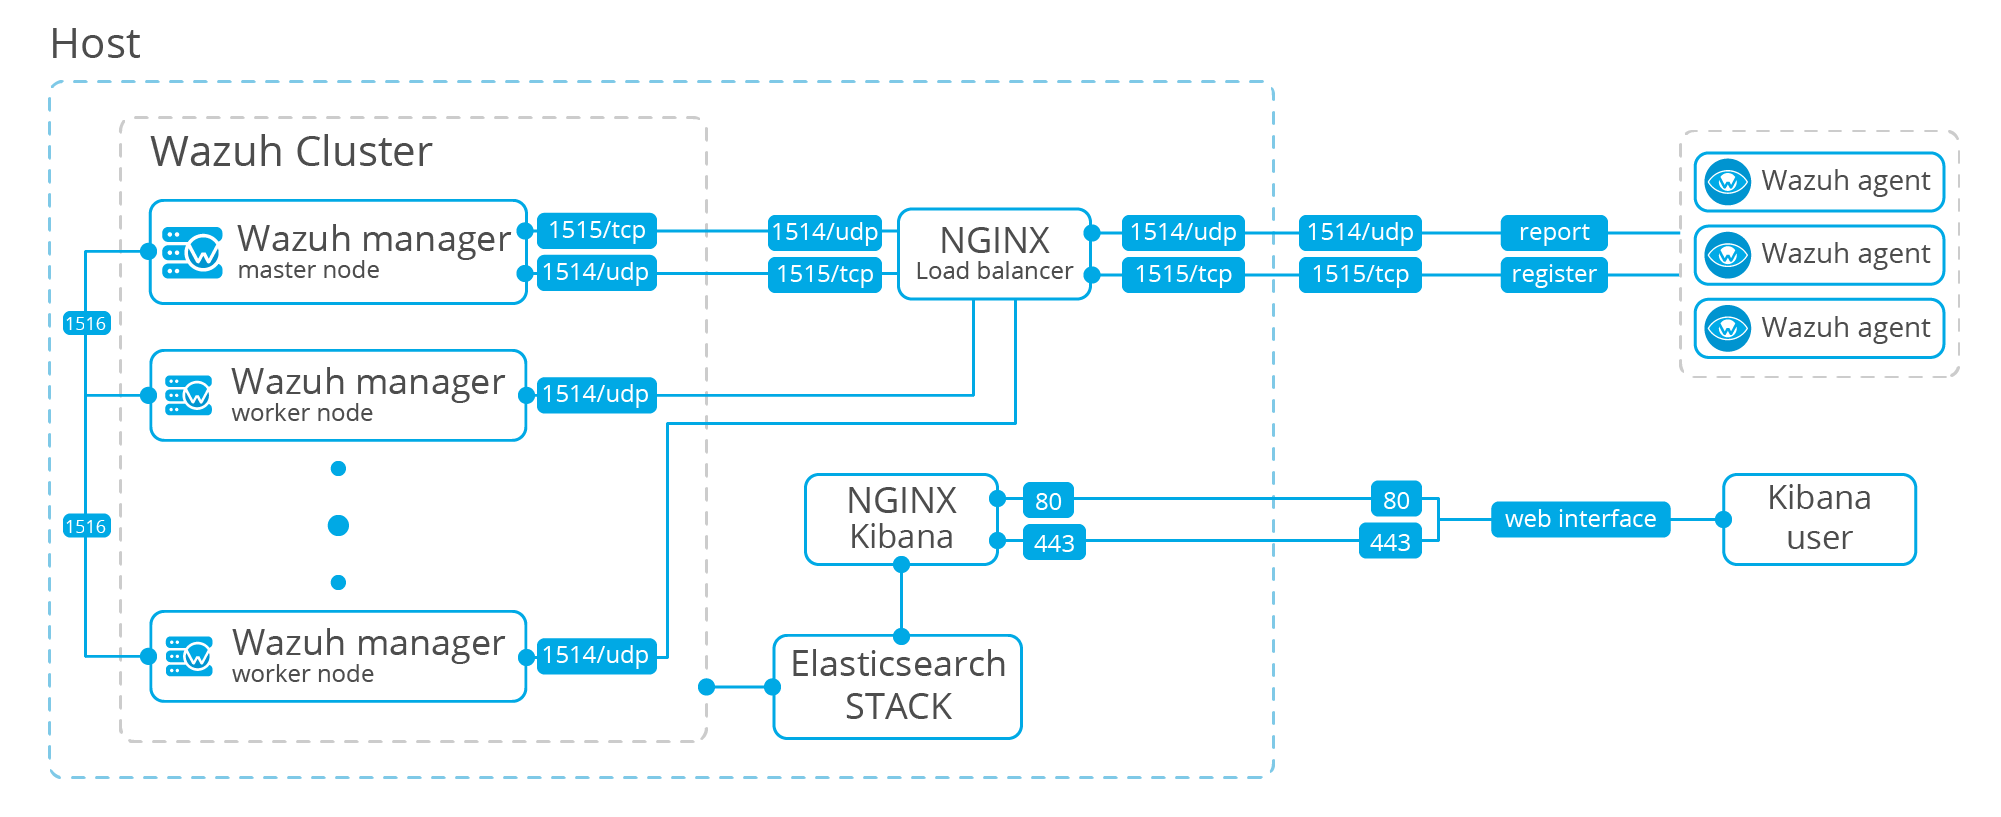 Diagram of the cluster communications